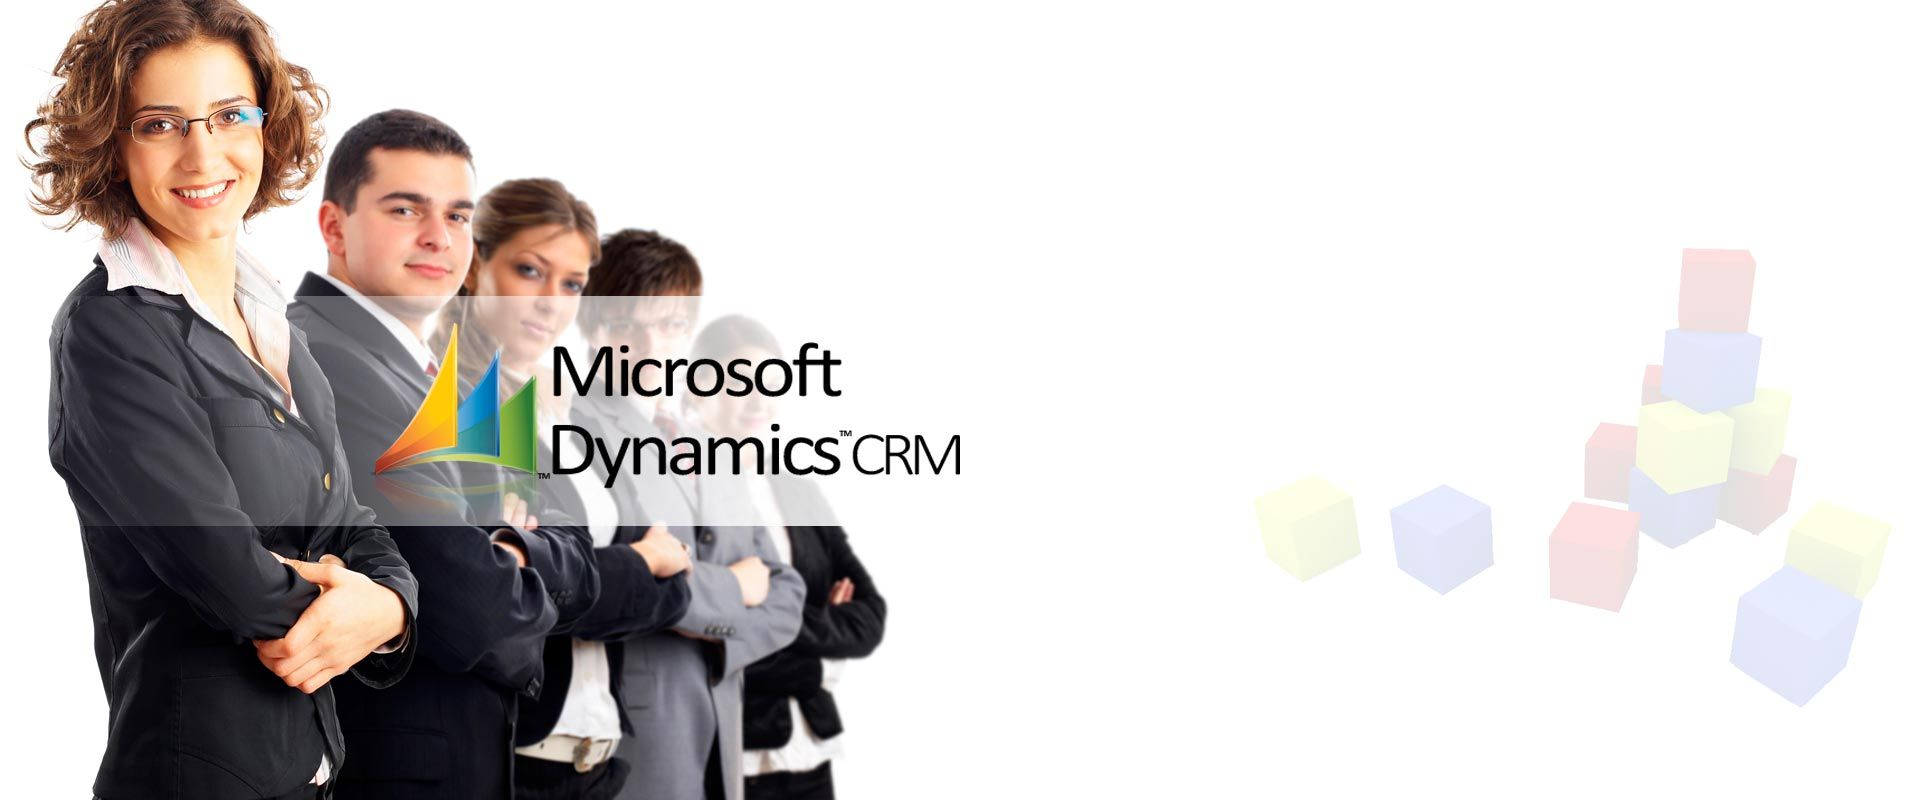 Microsoft Dynamics CRM Consulting Company in Houston | Austin | Dallas | San Antonio | Atlanta